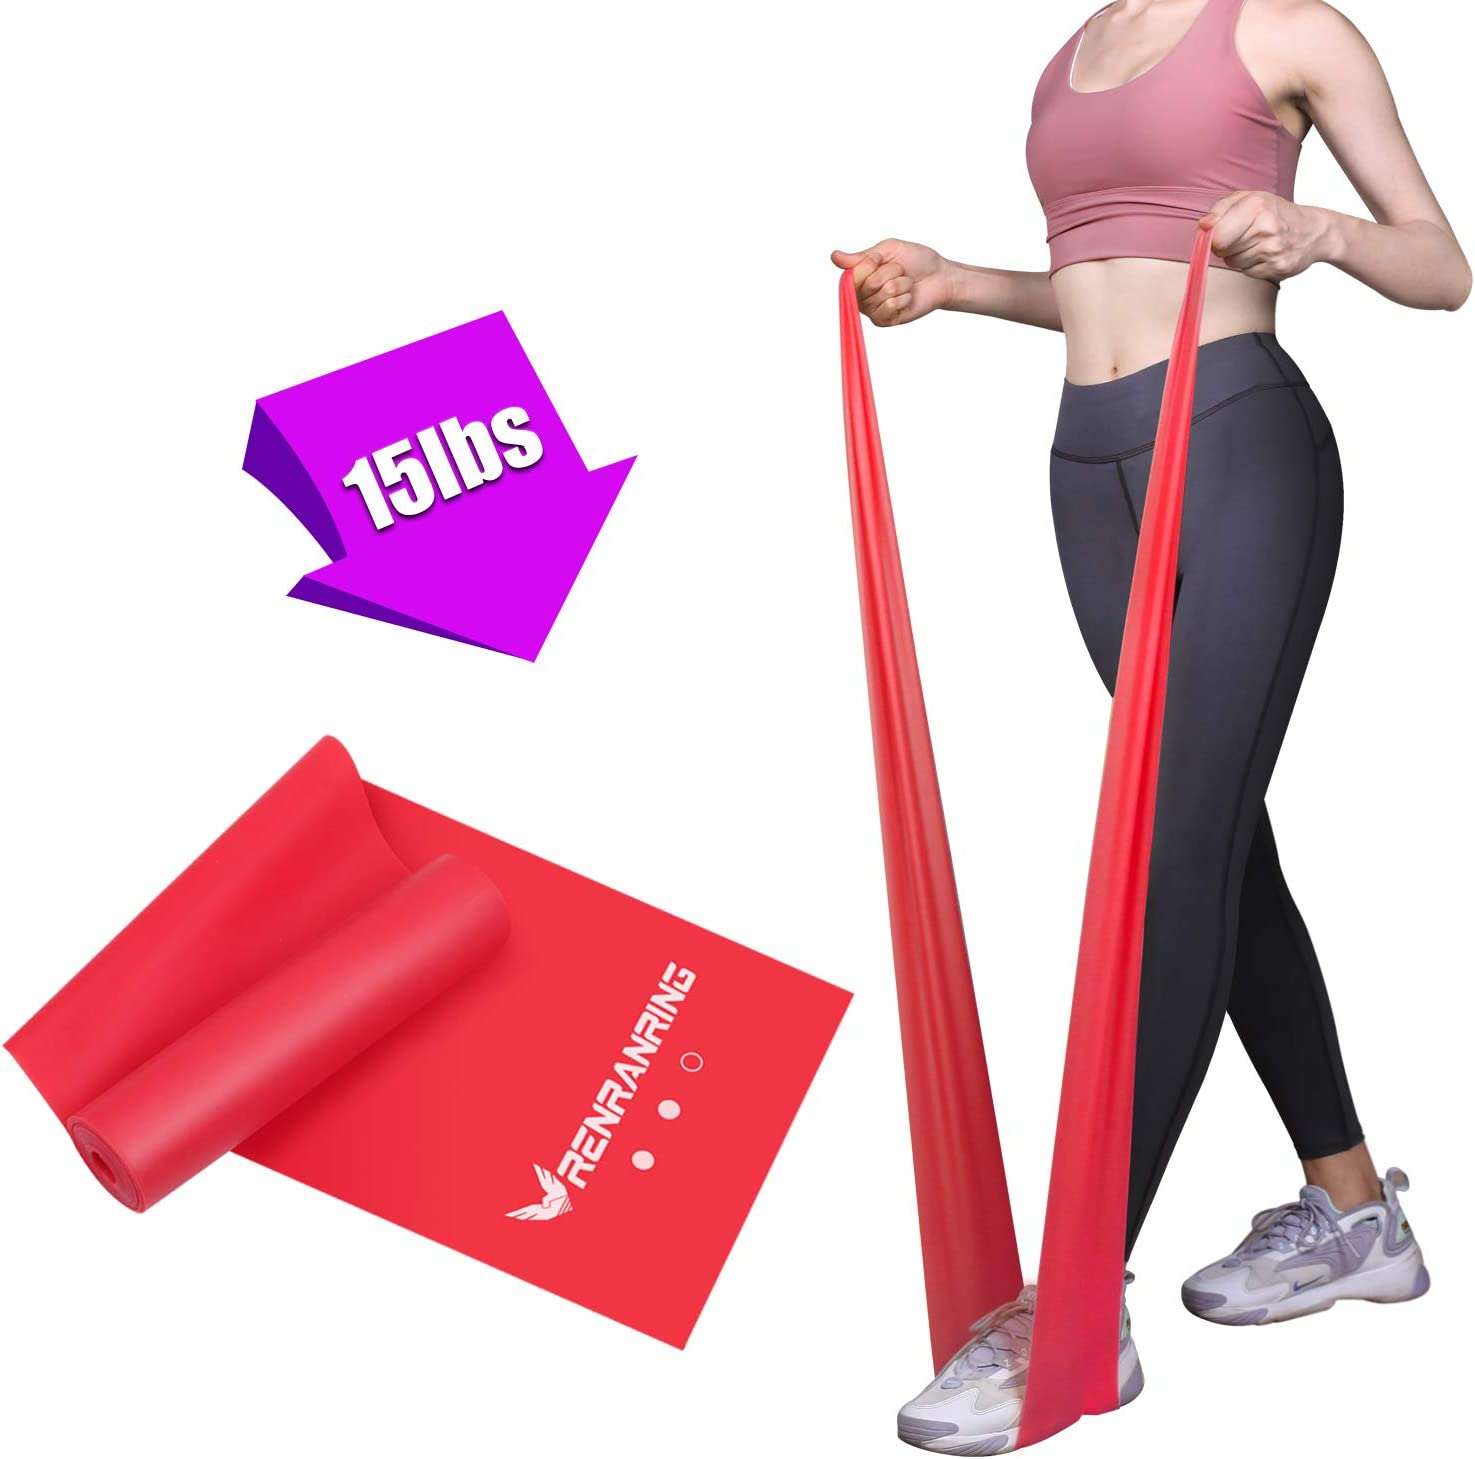 RENRANRING Resistance Bands, Exercise Bands for Physical Therapy, Yoga, Pilates, Rehab and Home Workout, Non-Latex Elastic Bands Include Door Anchor